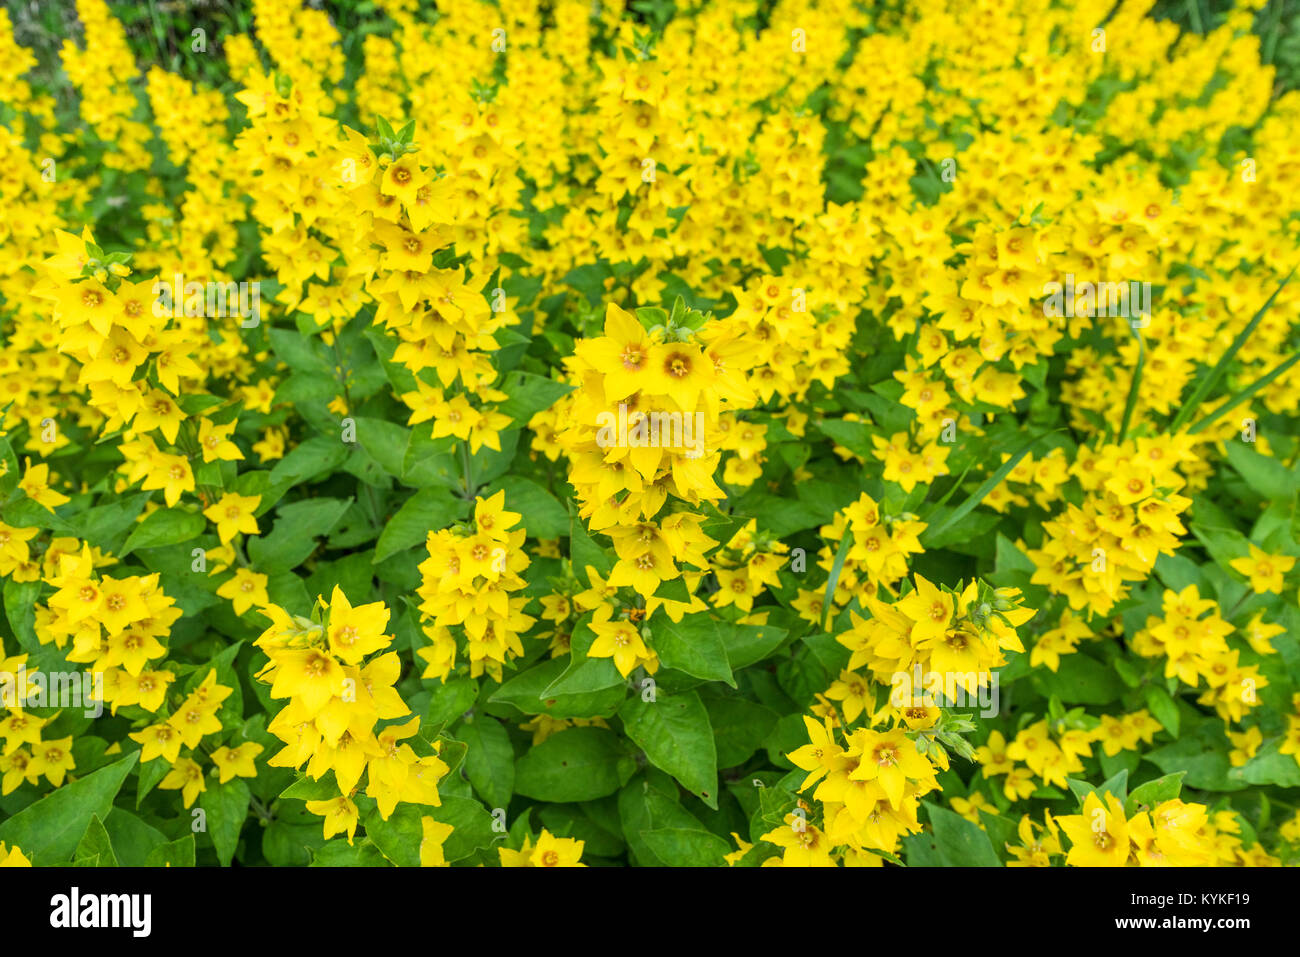 Bunch of yellow flowers in a garden with fresh green leaves in the summer - Stock Image